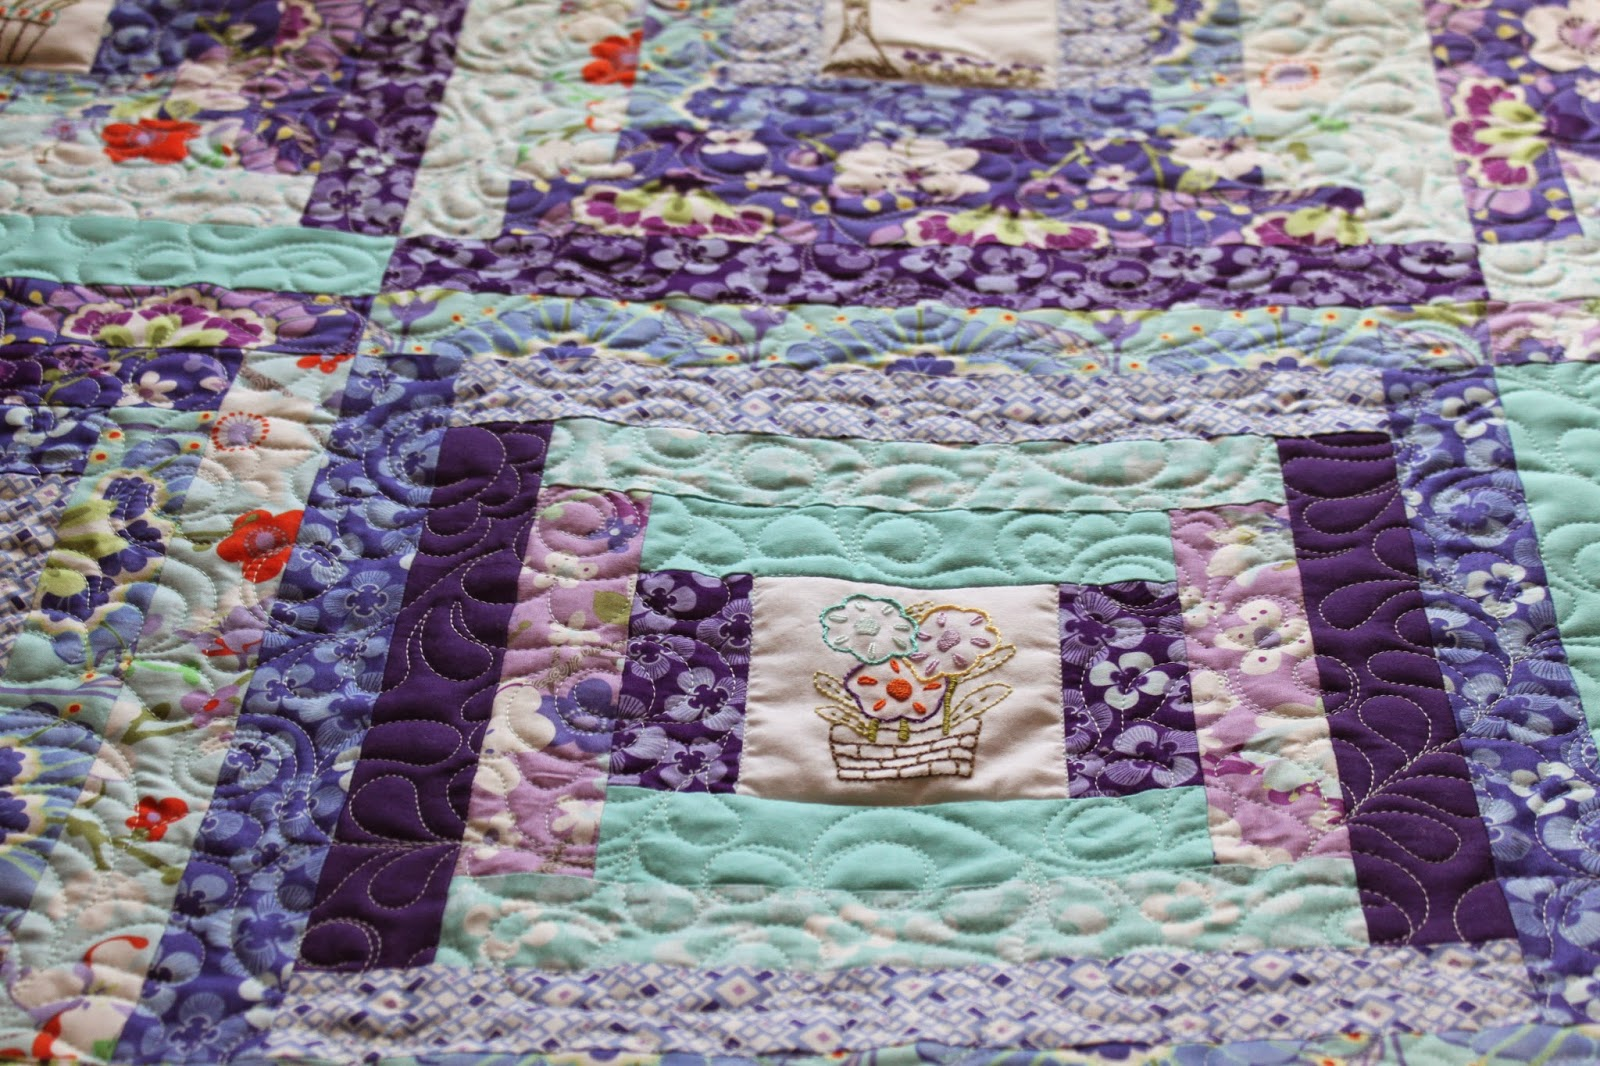 Stitch by Stitch: Clover and Violet quilt